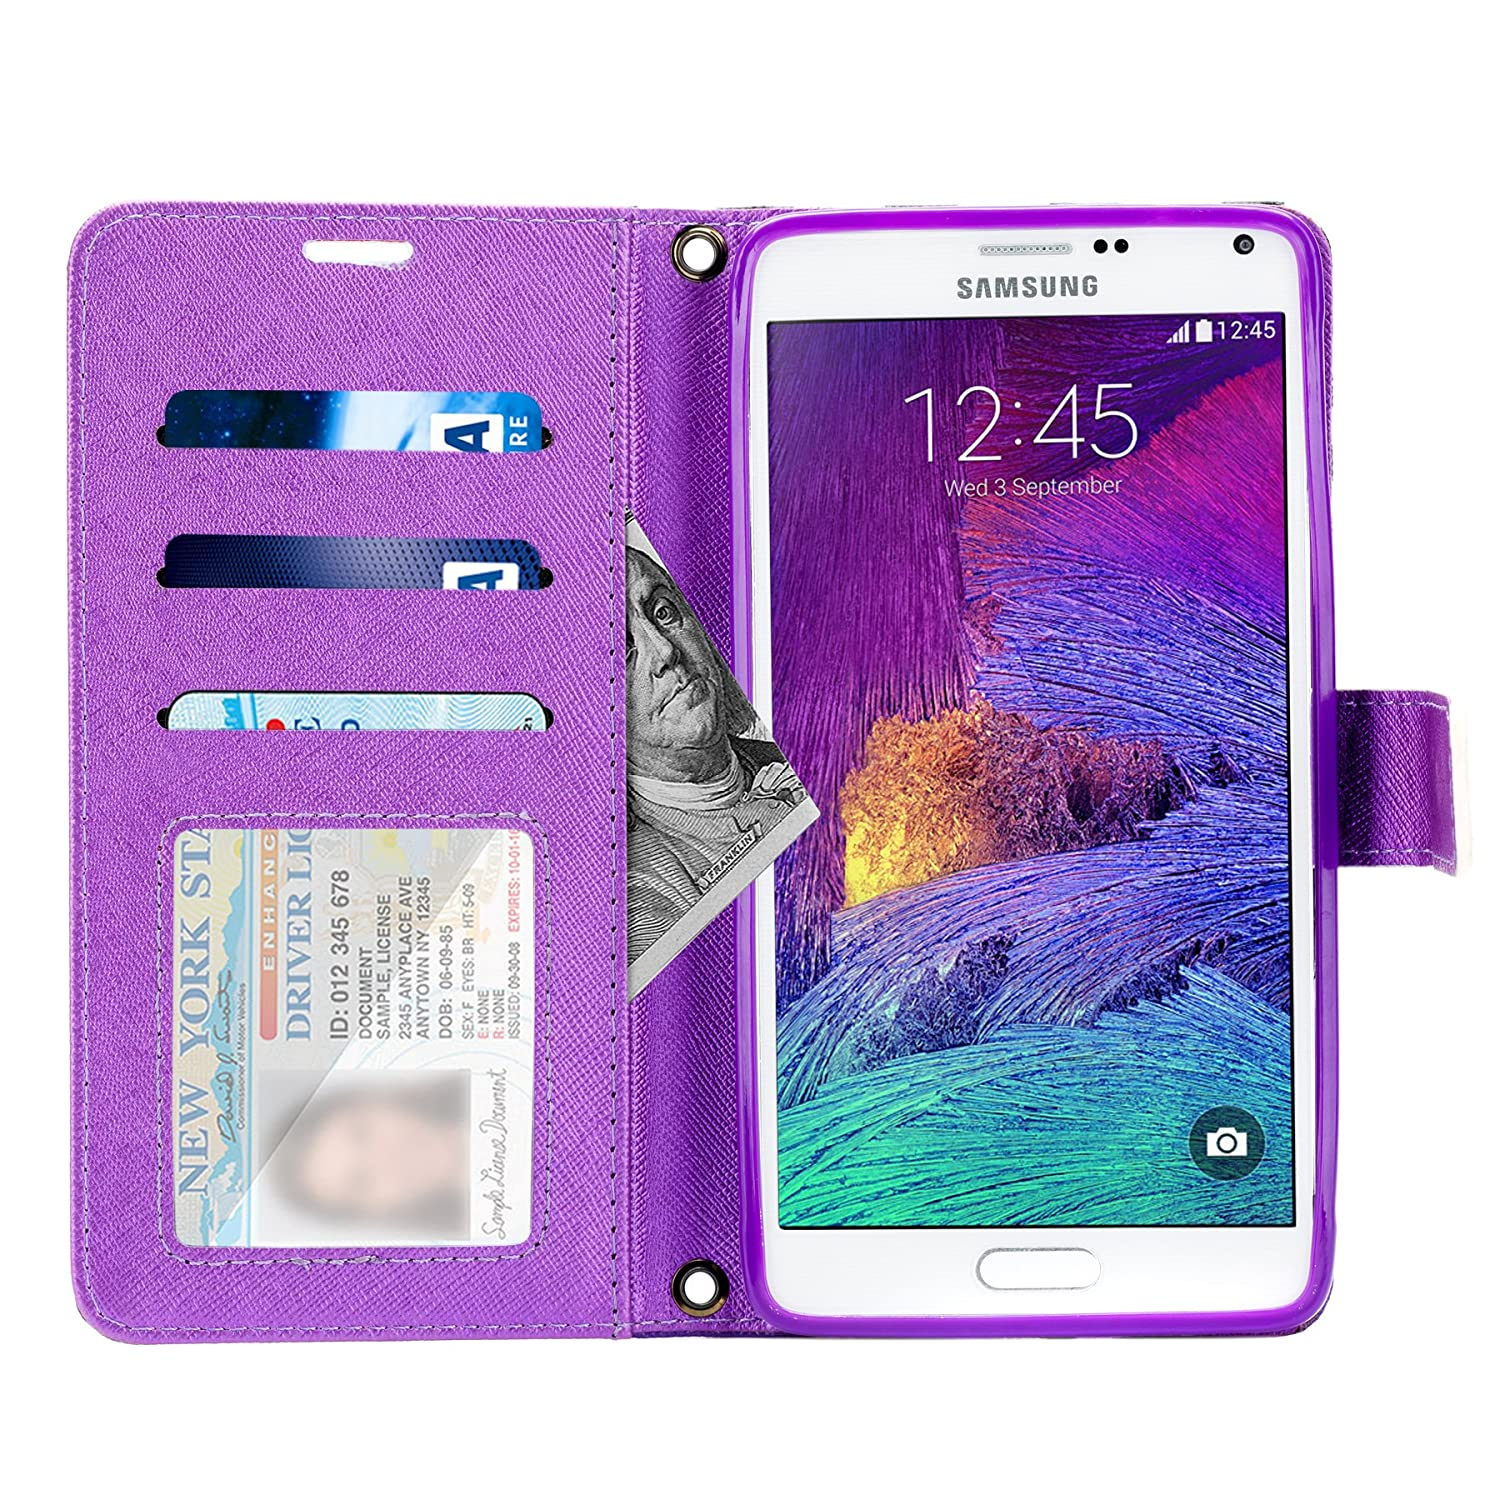 Galaxy Note Case Cellularvilla SM N910S Image 3